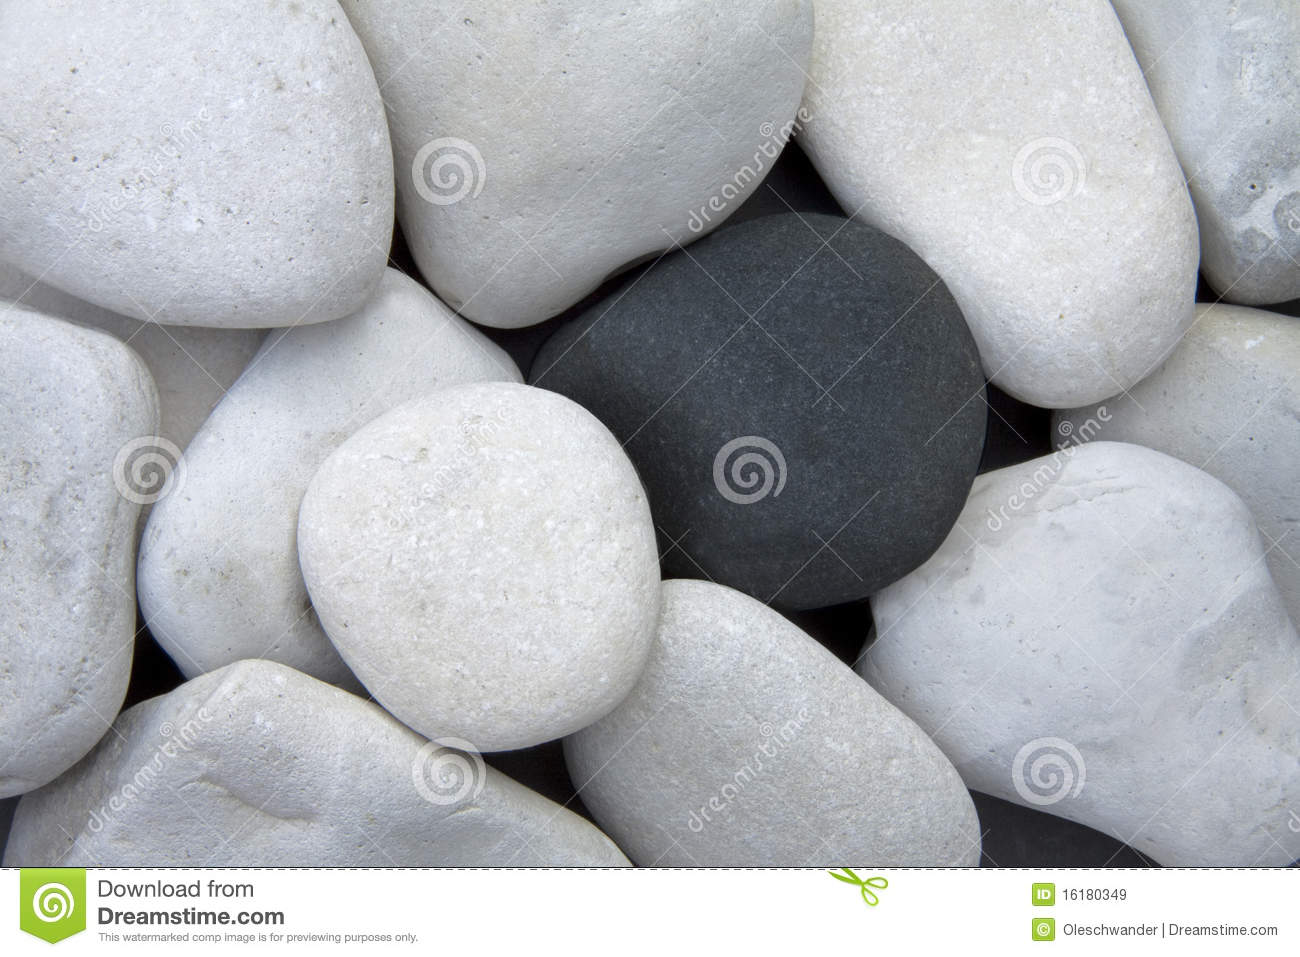 Close up of a pile of white stones with a single black stone between